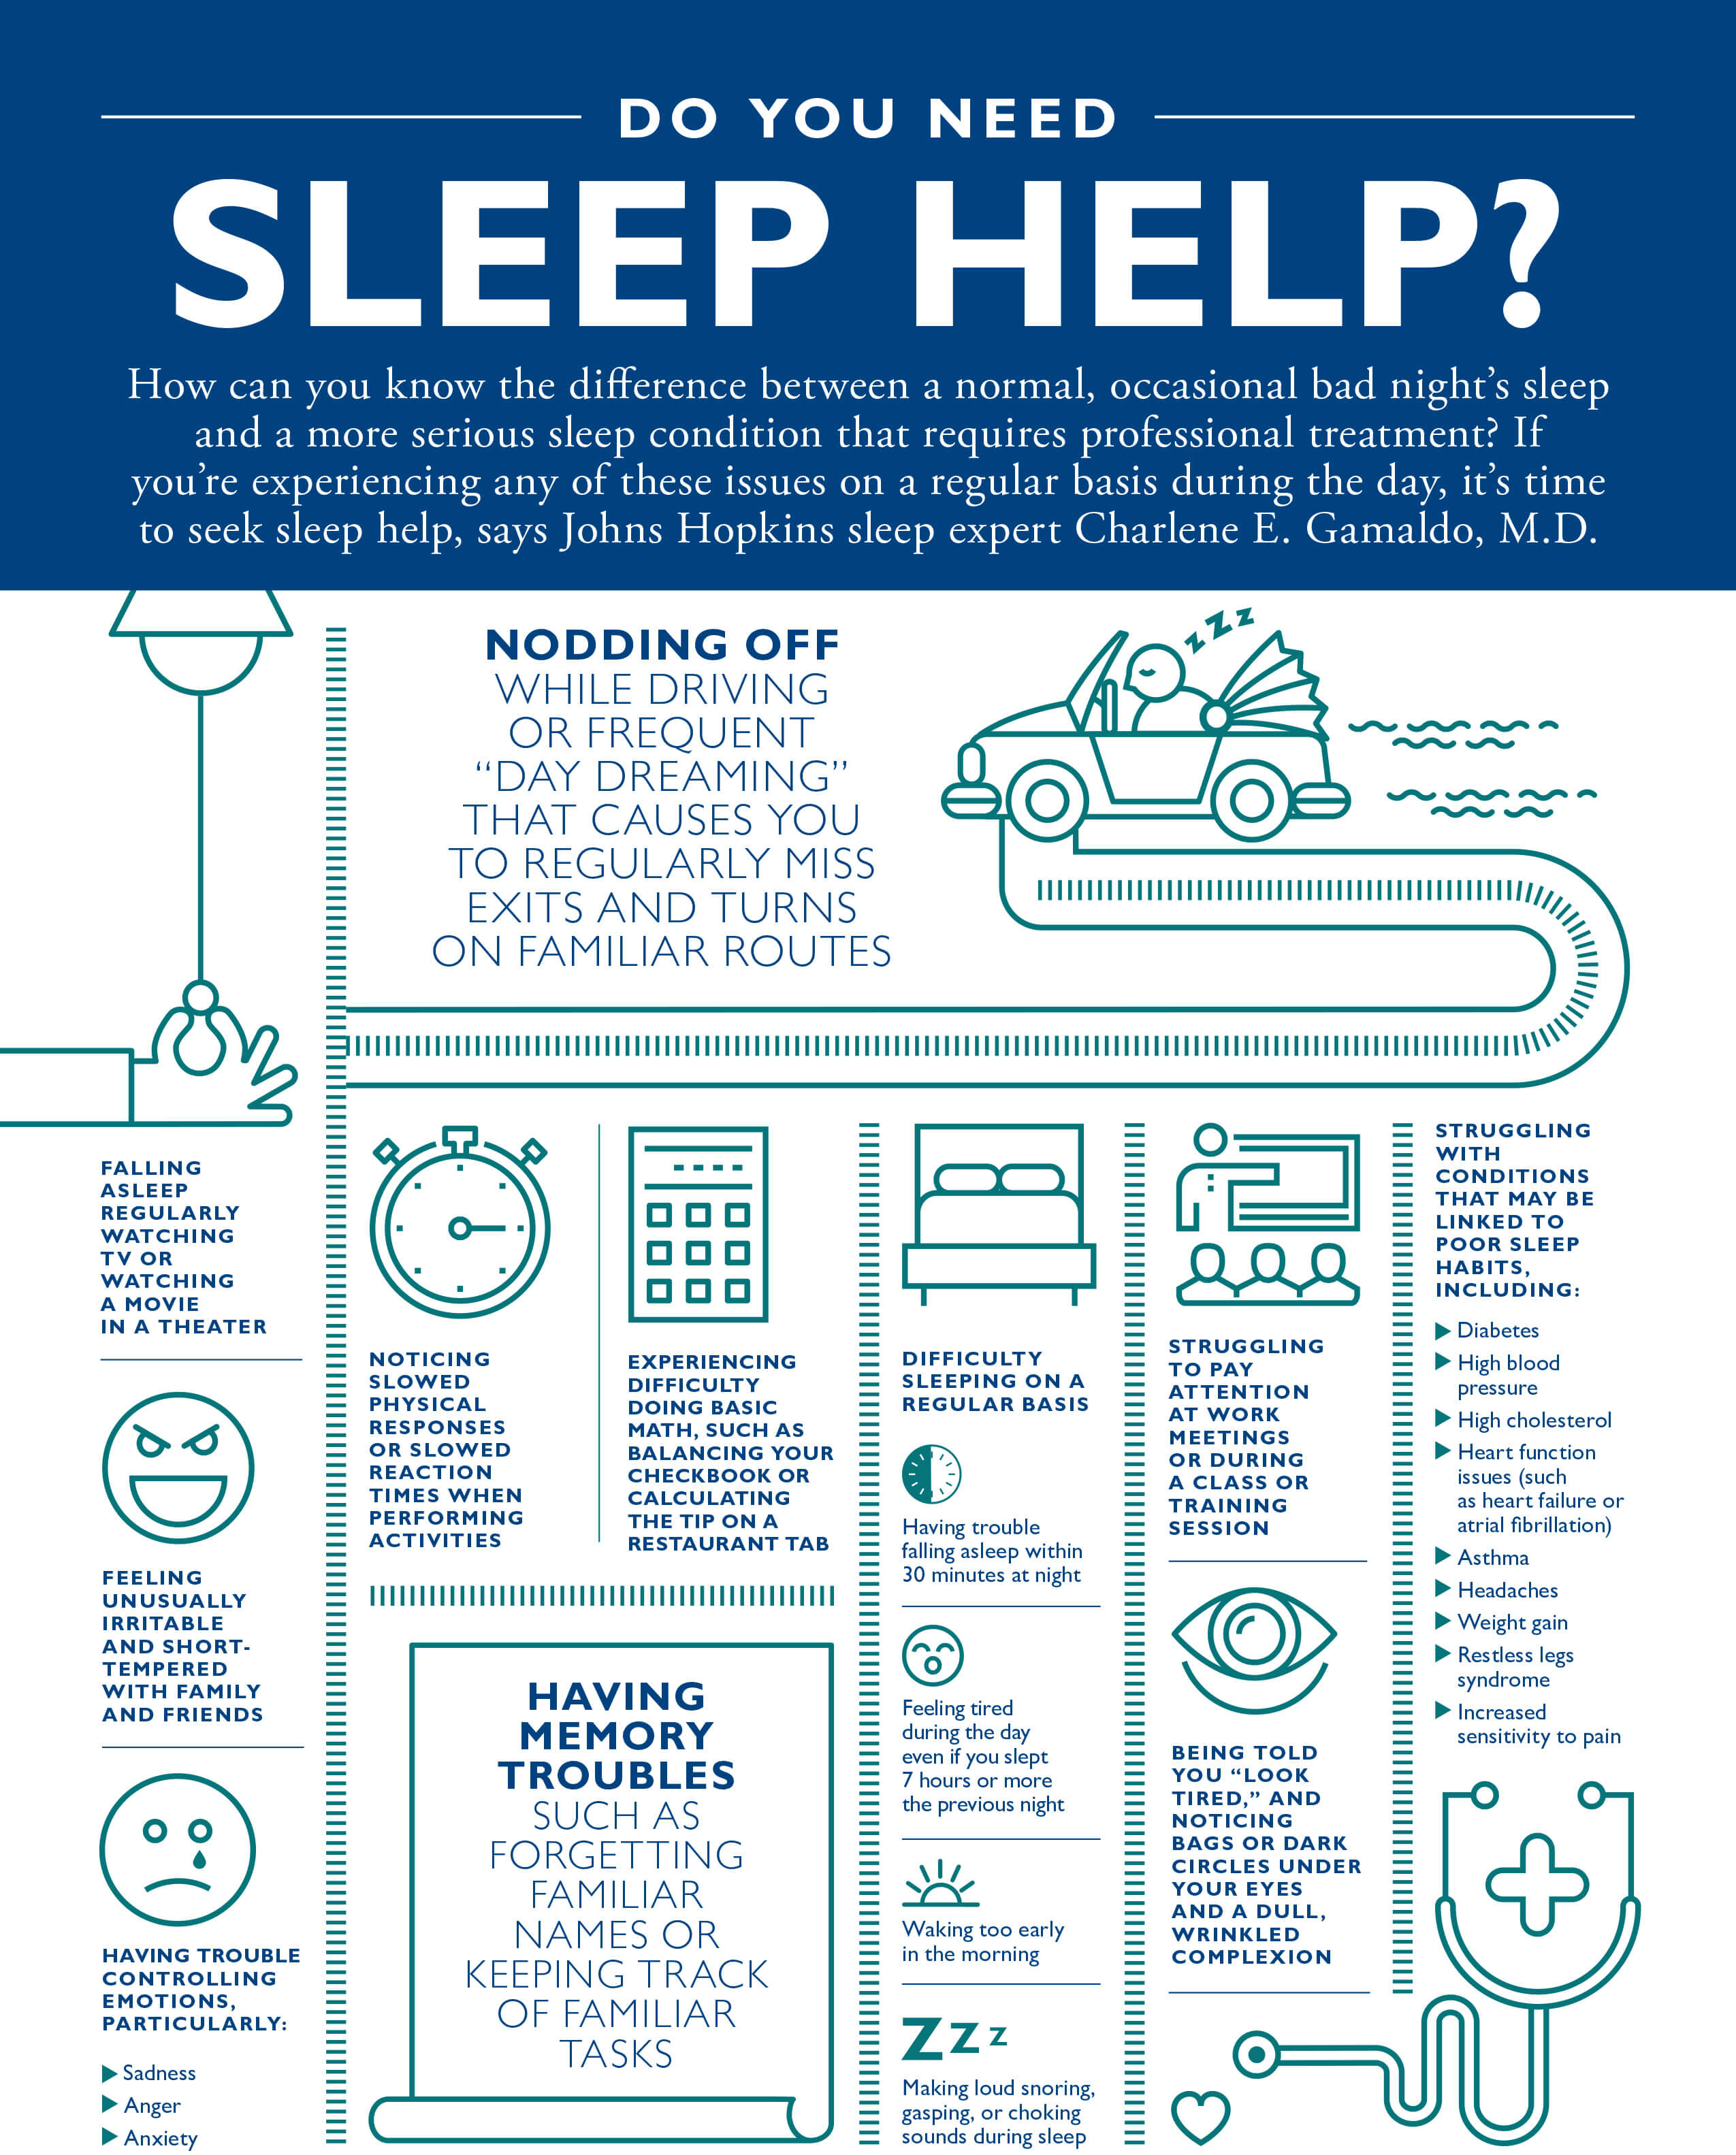 Sleep help infographic detailing various sleep issues